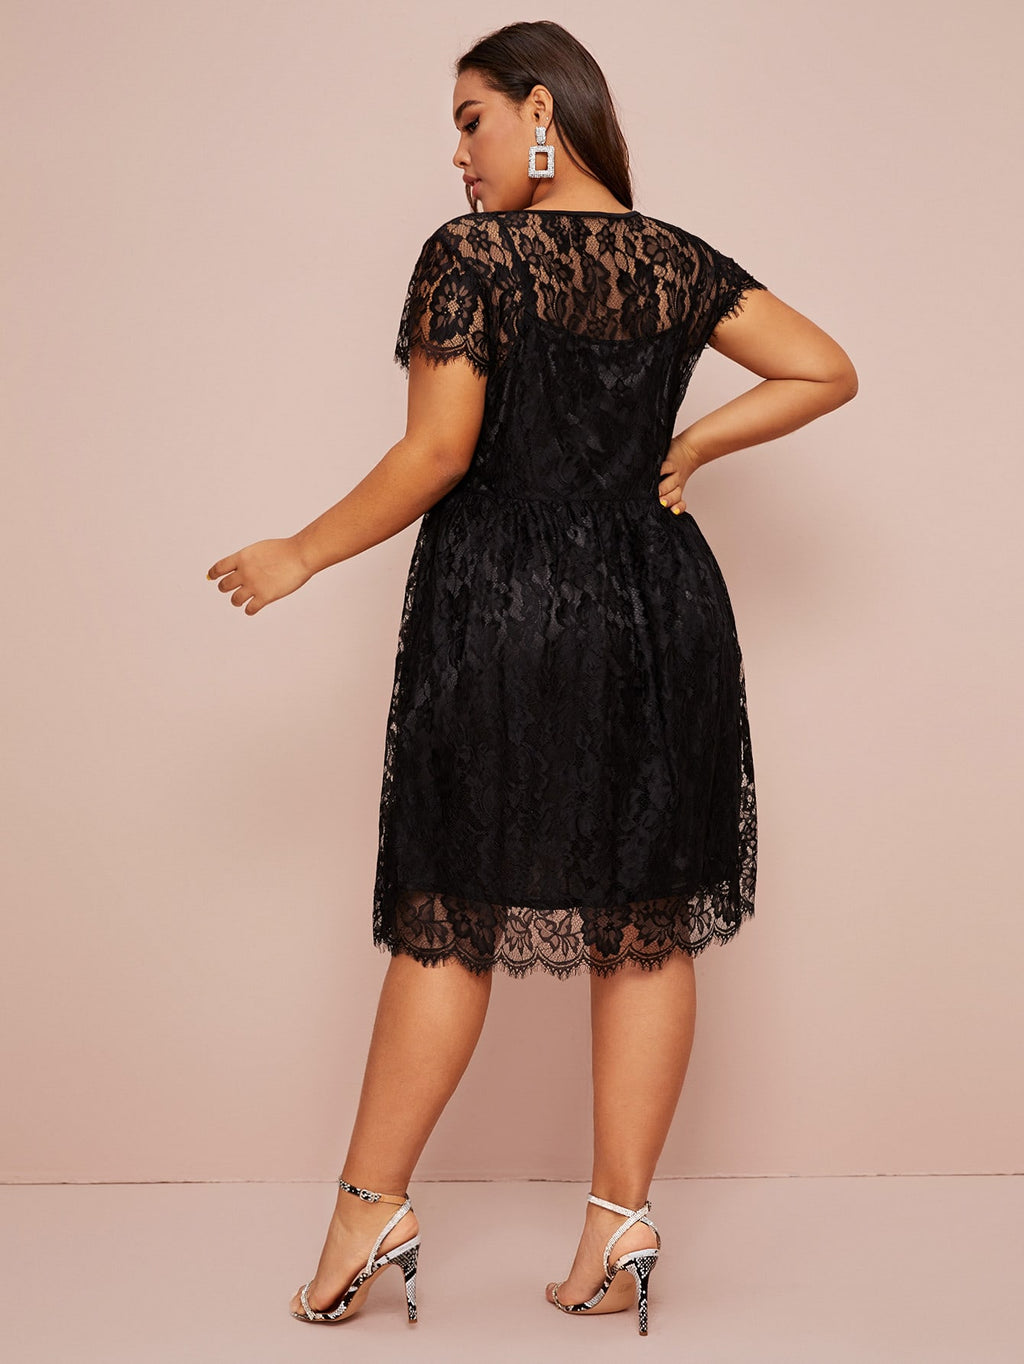 Plus Size Adorable Scallop Trim A-line Dress